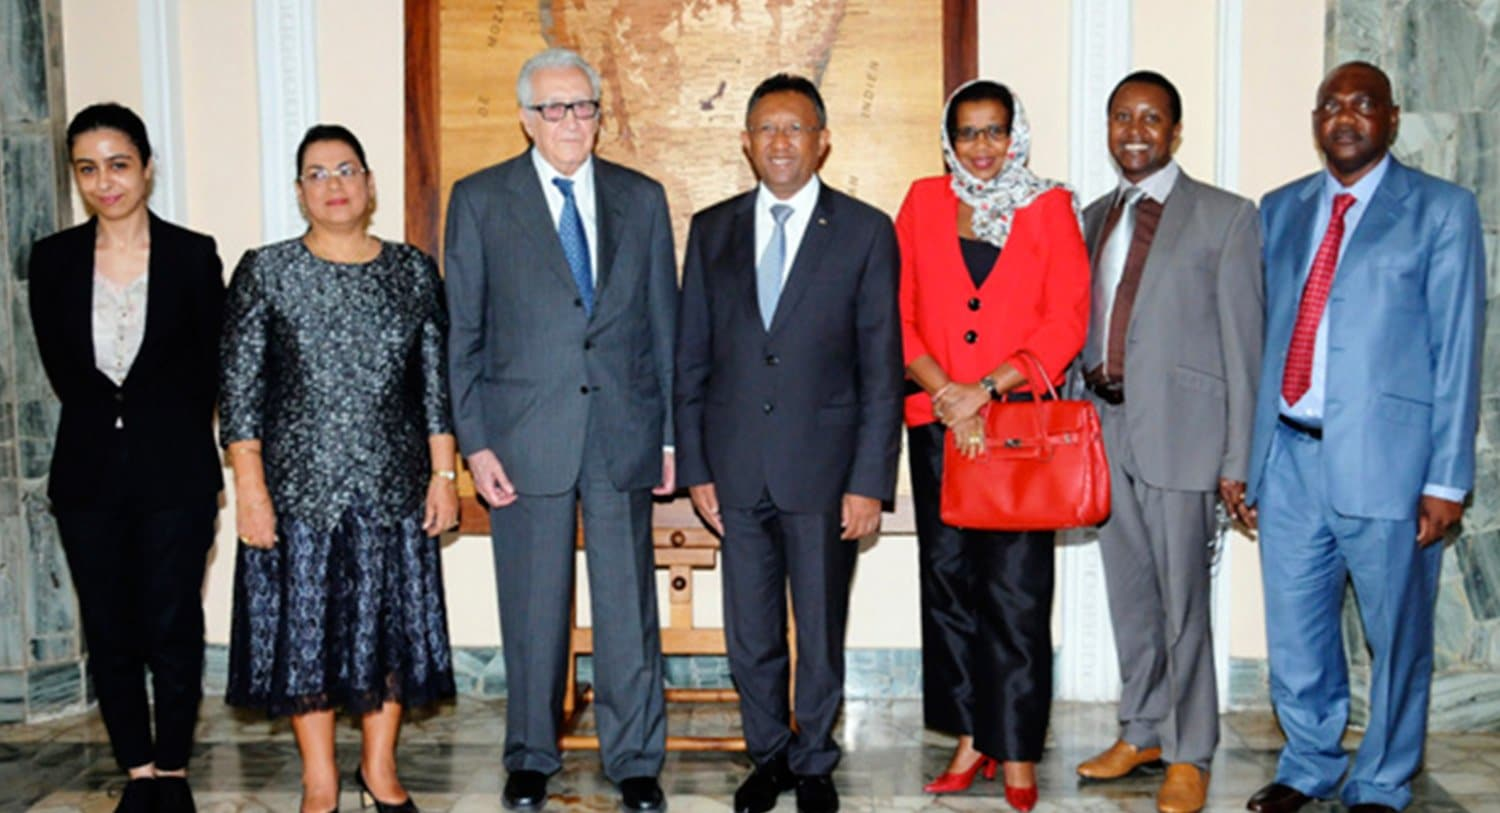 ARTICLE-The African union's visit to Madagascar